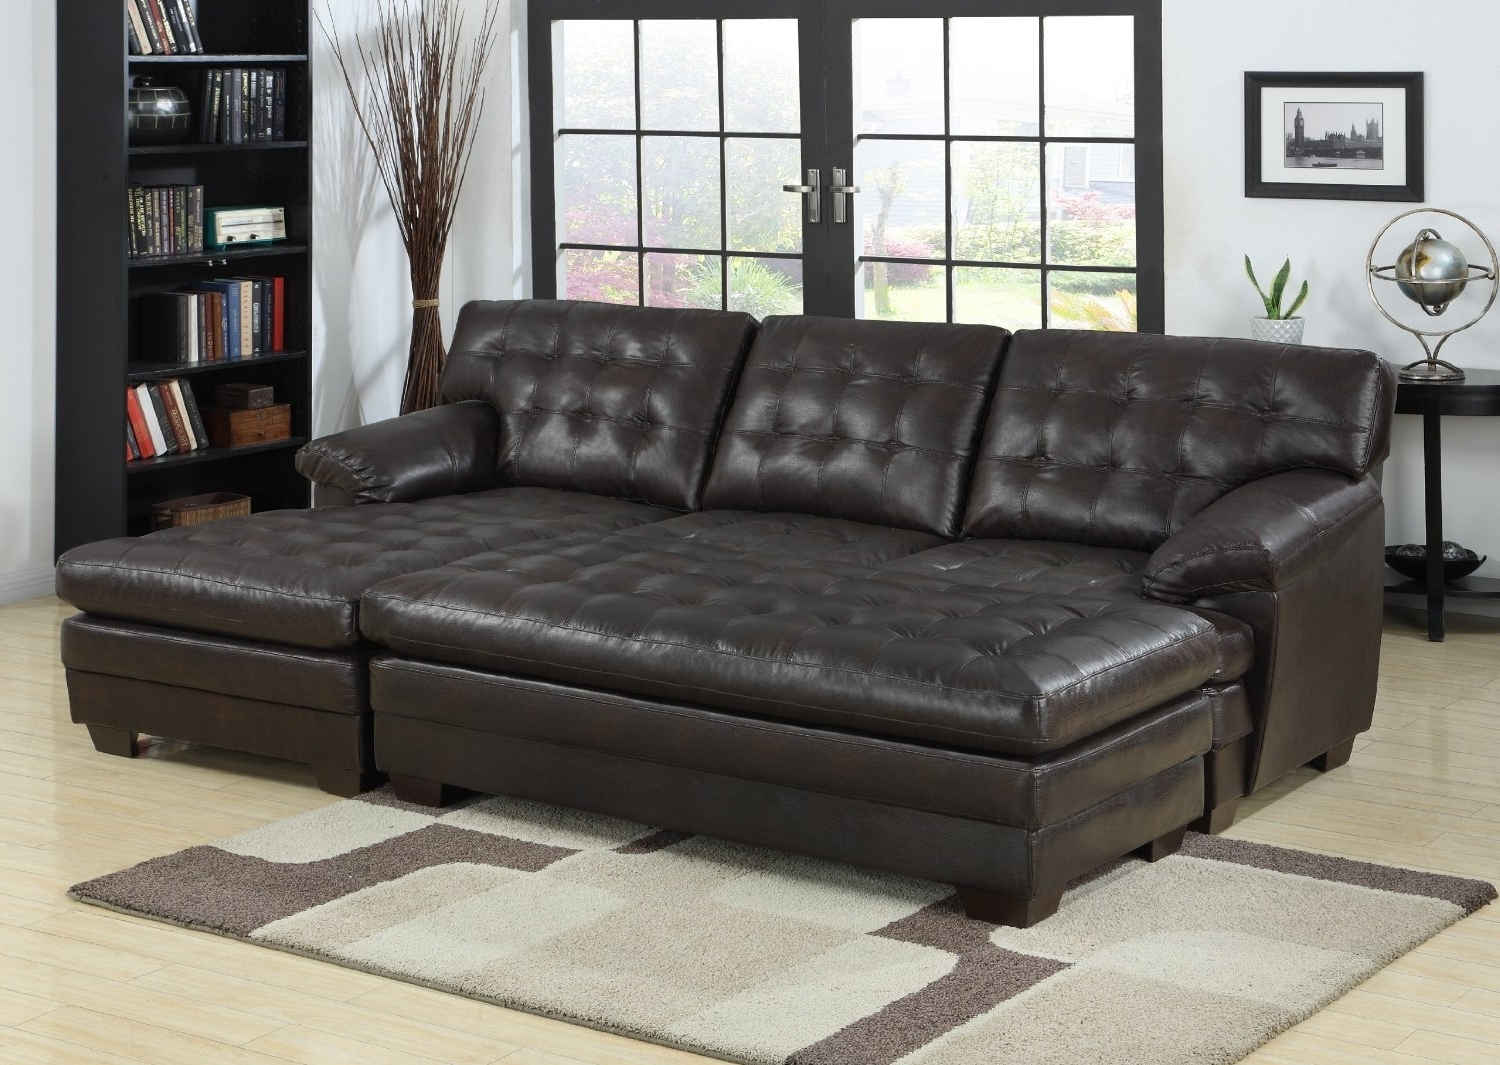 Popular Armchair : Leather Sectional Sleeper Sofa With Chaise Sectional With Leather Sofas With Chaise Lounge (View 11 of 15)